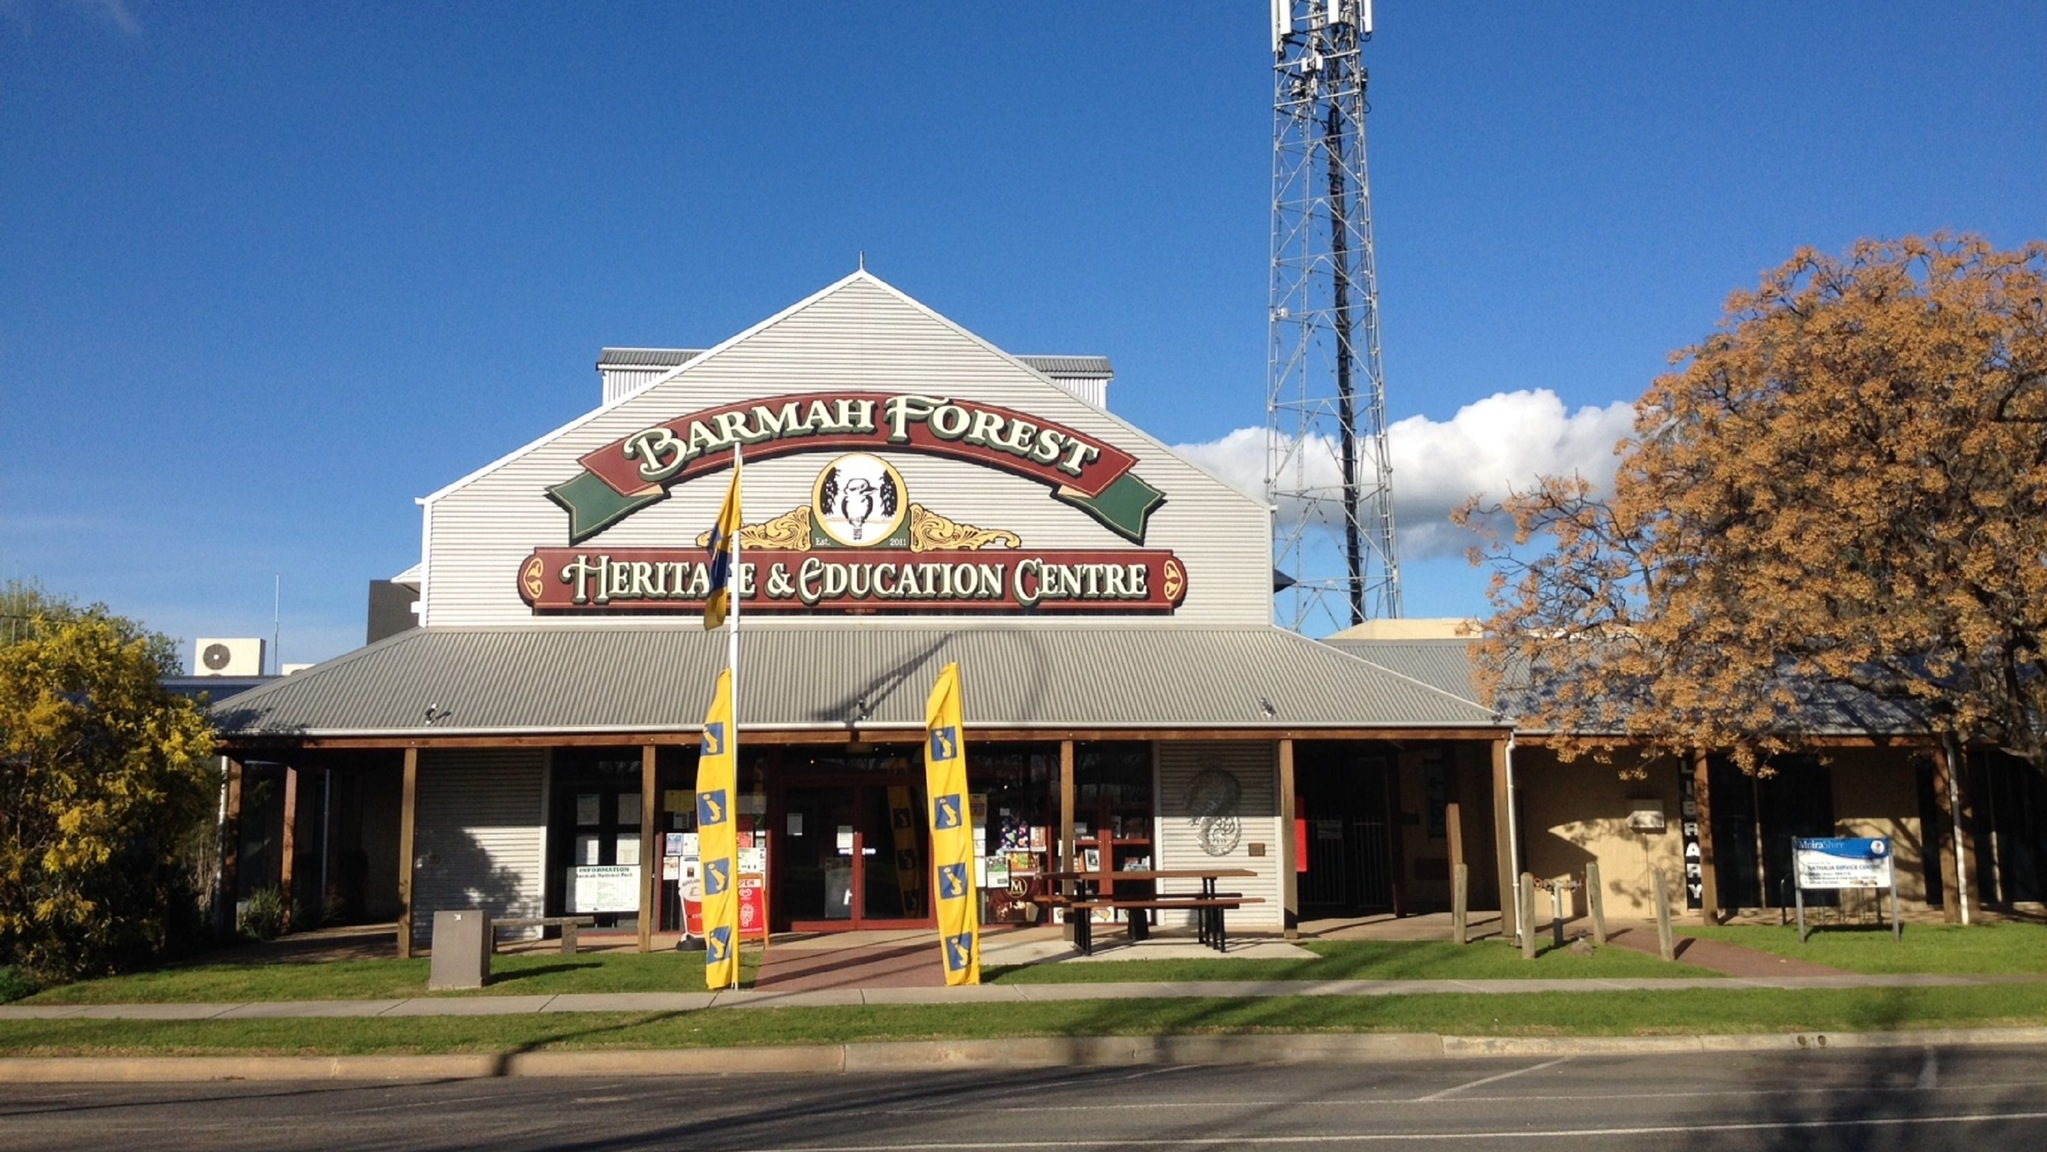 Inside The Barmah Forest Heritage & Education Centre